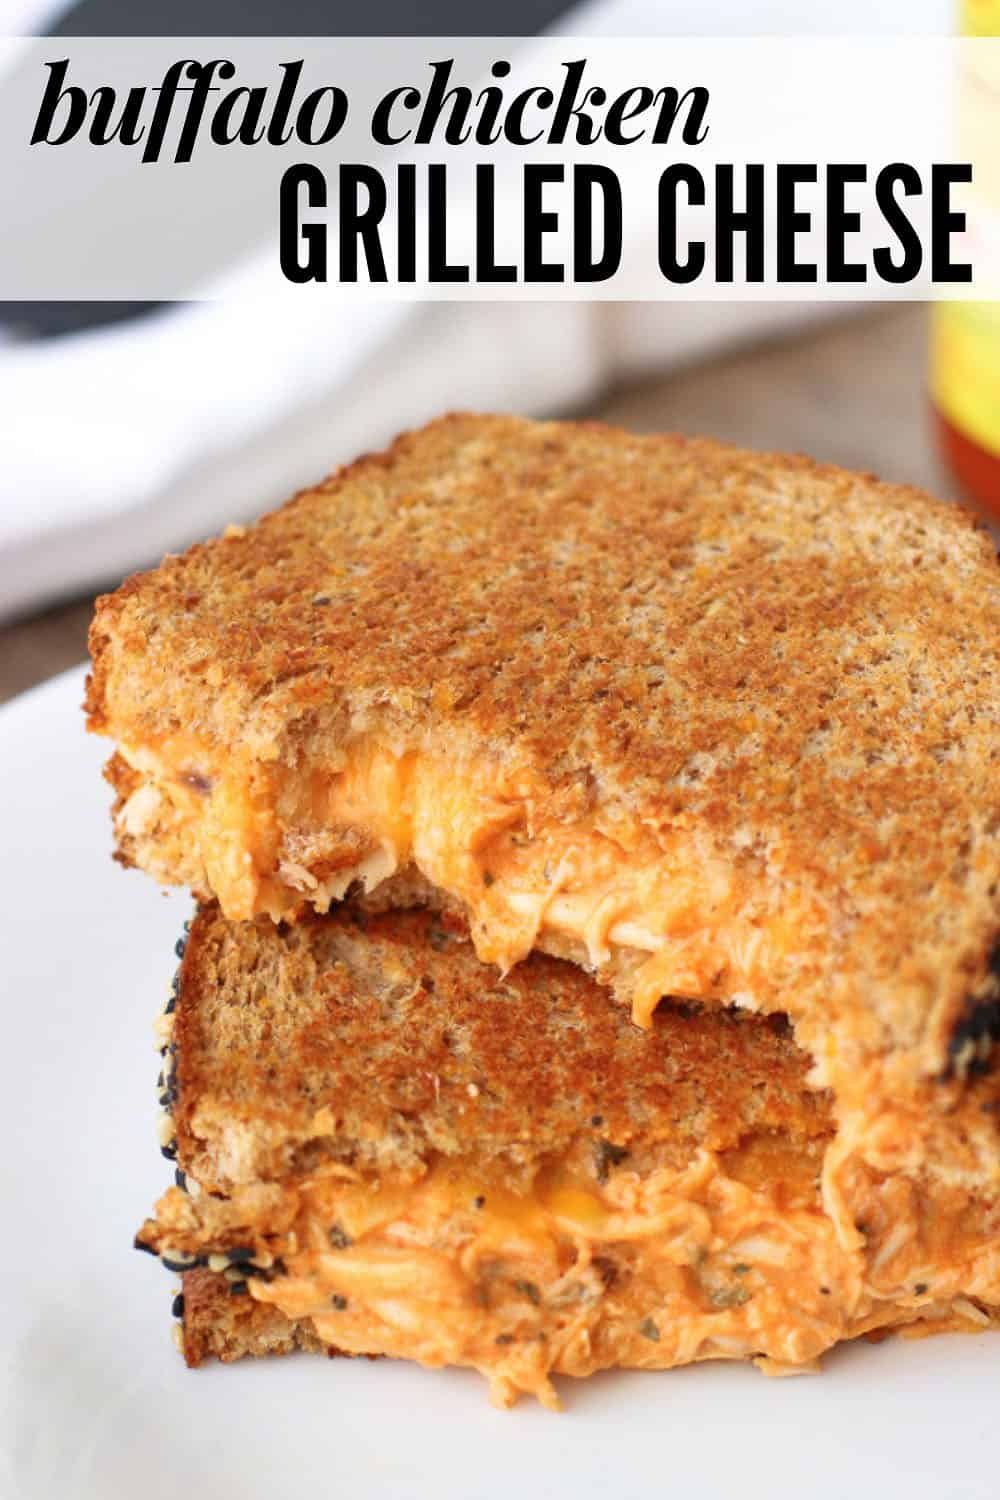 Grilled cheese sandwich on a plate with text overlay stating the recipe name